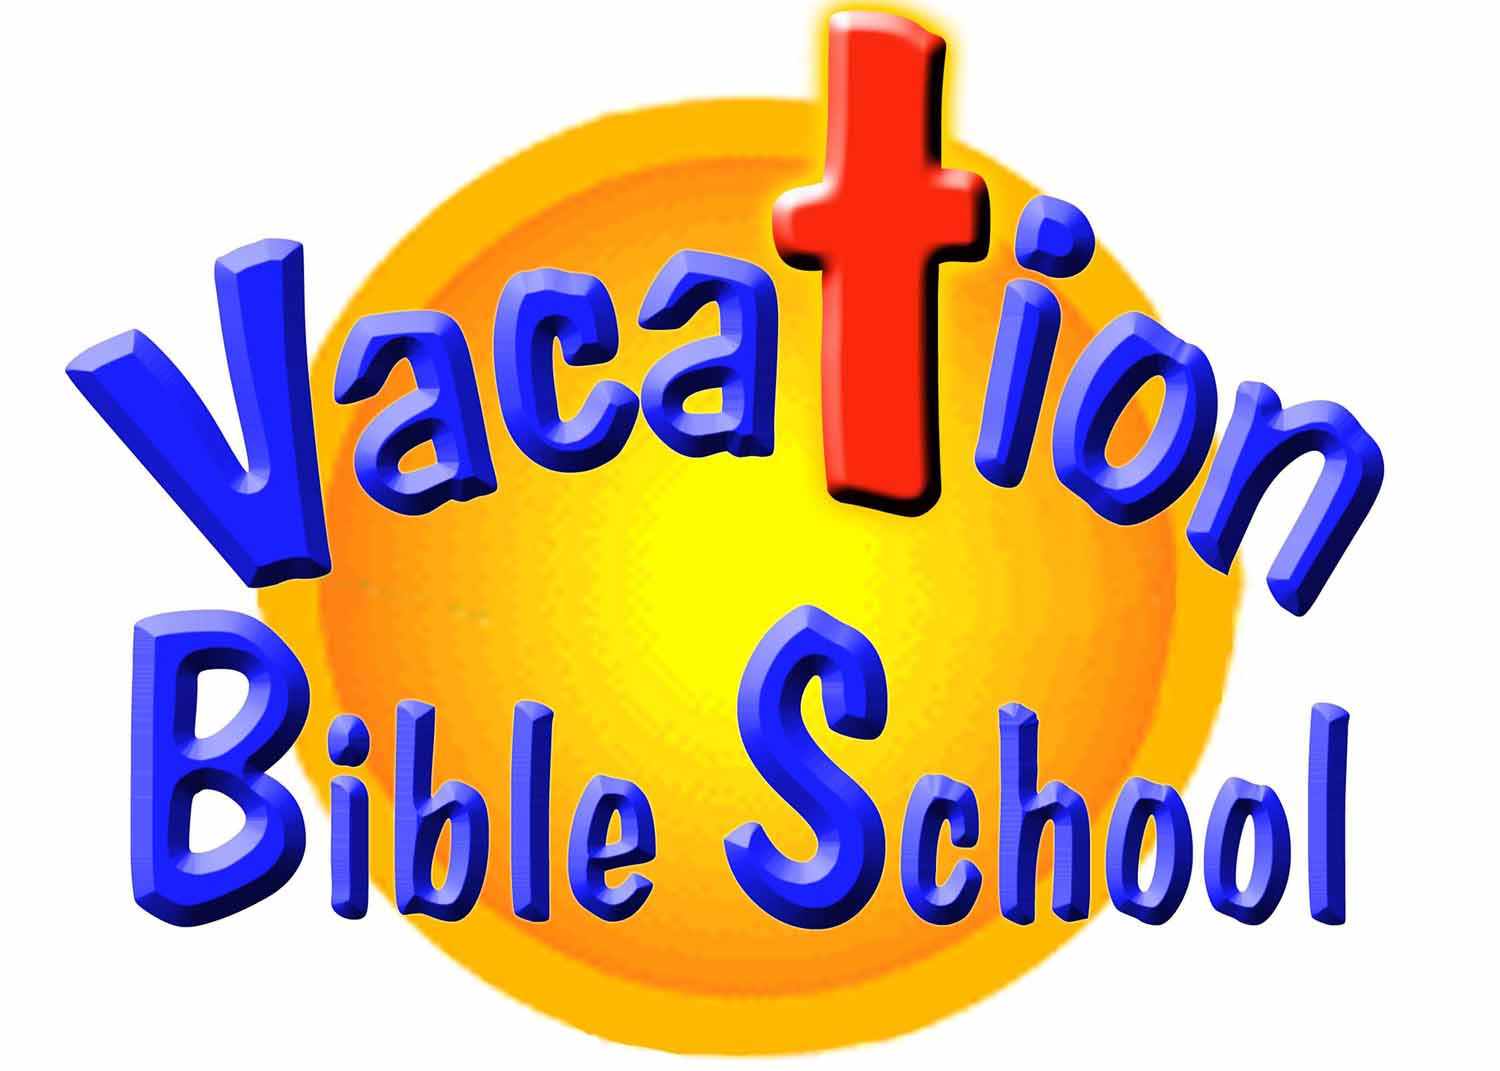 Png Royalty Free For Vacation Bible School - Rr Collections - Free Printable Vacation Bible School Materials